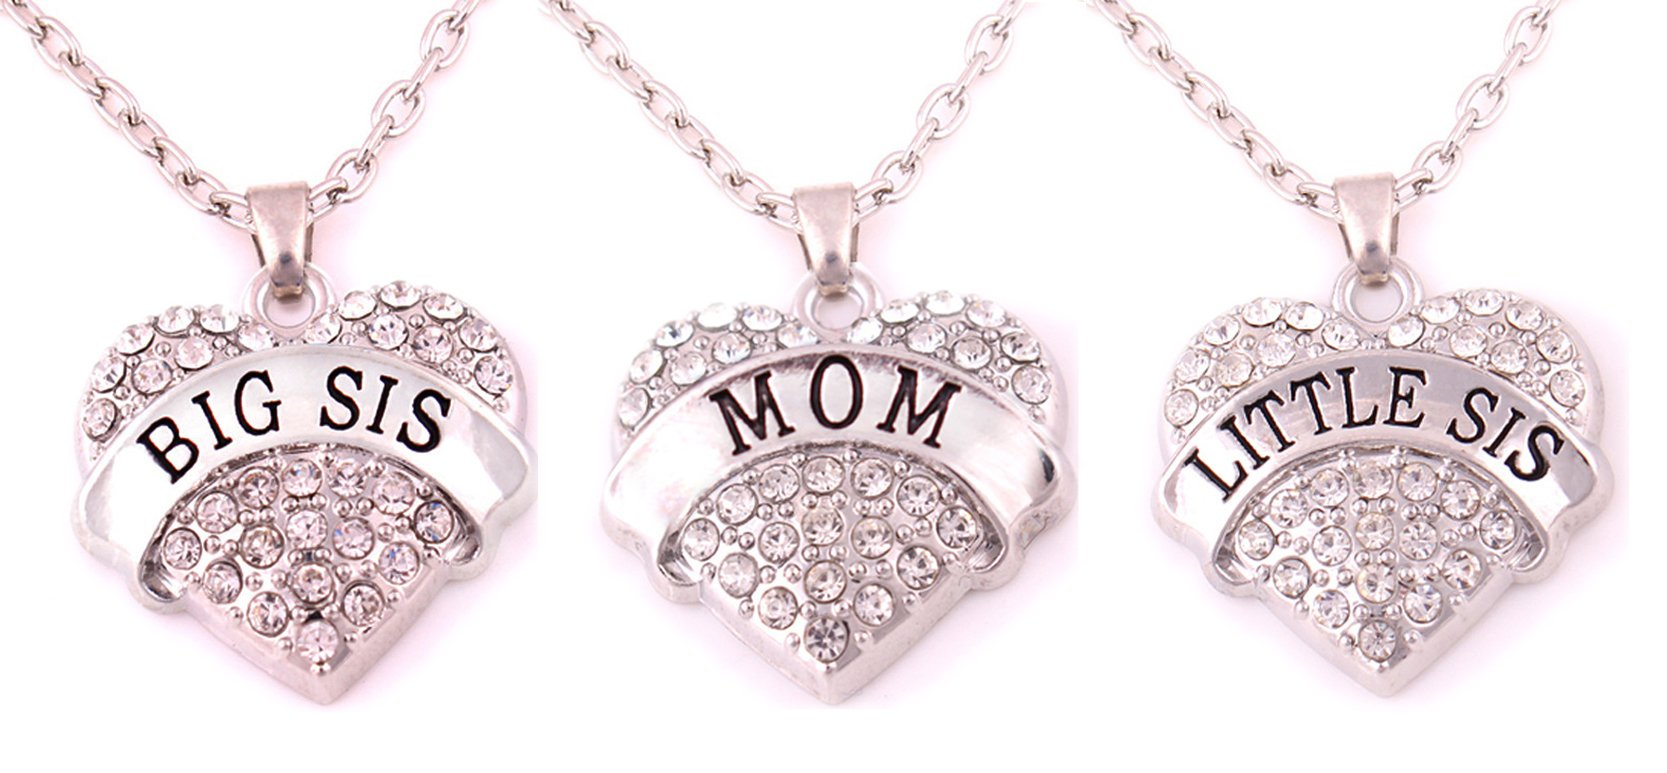 Mothers necklace charms